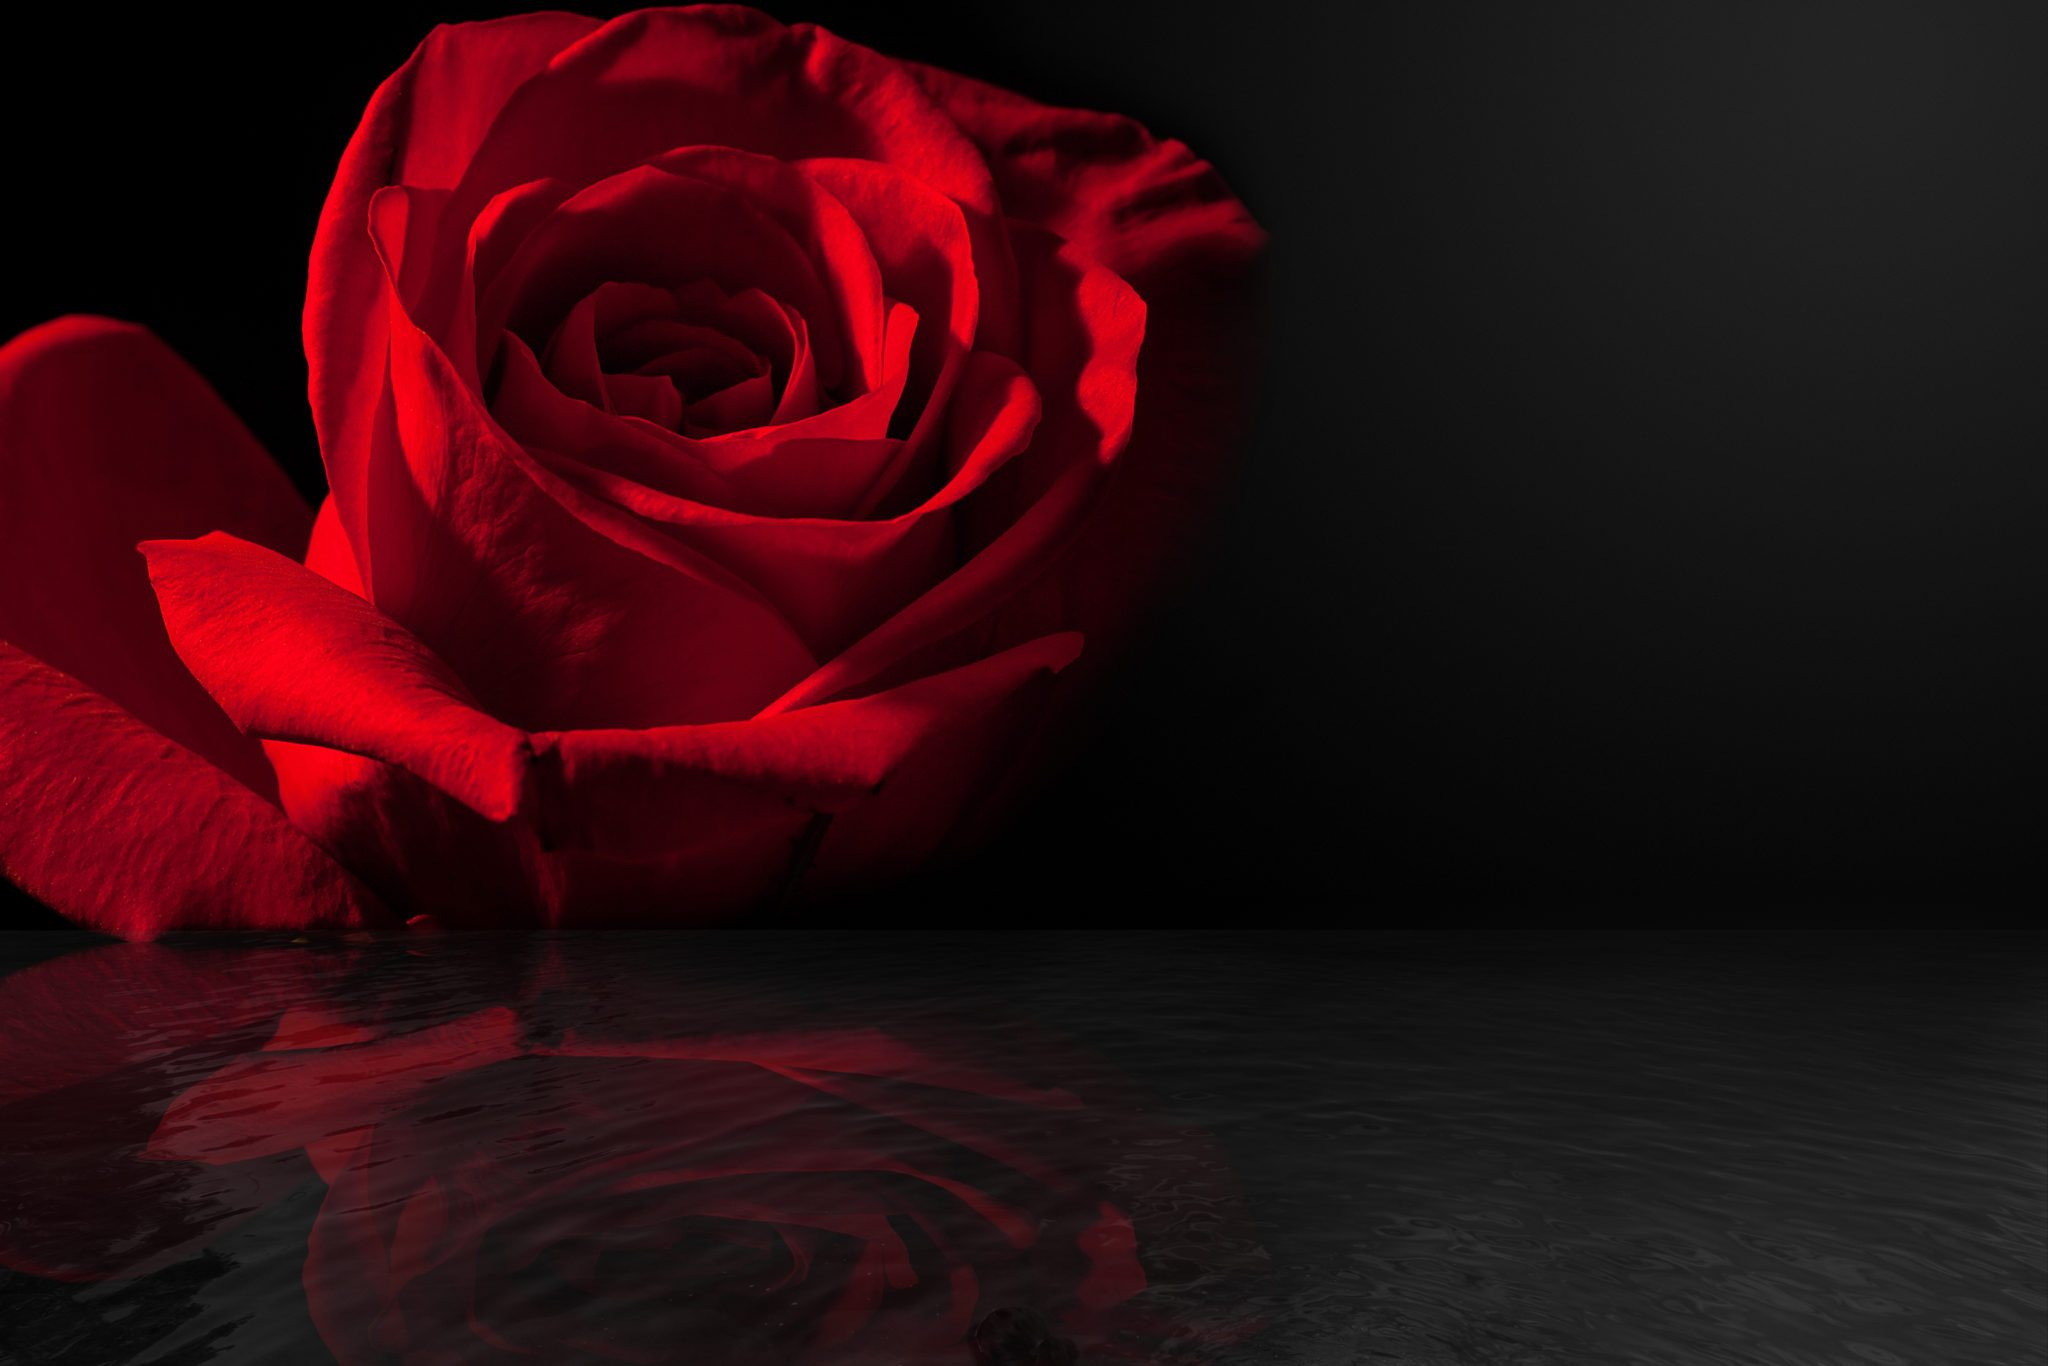 Red rose with reflection at edge of water with subtle ripples. Room for copy for love or sympathy card